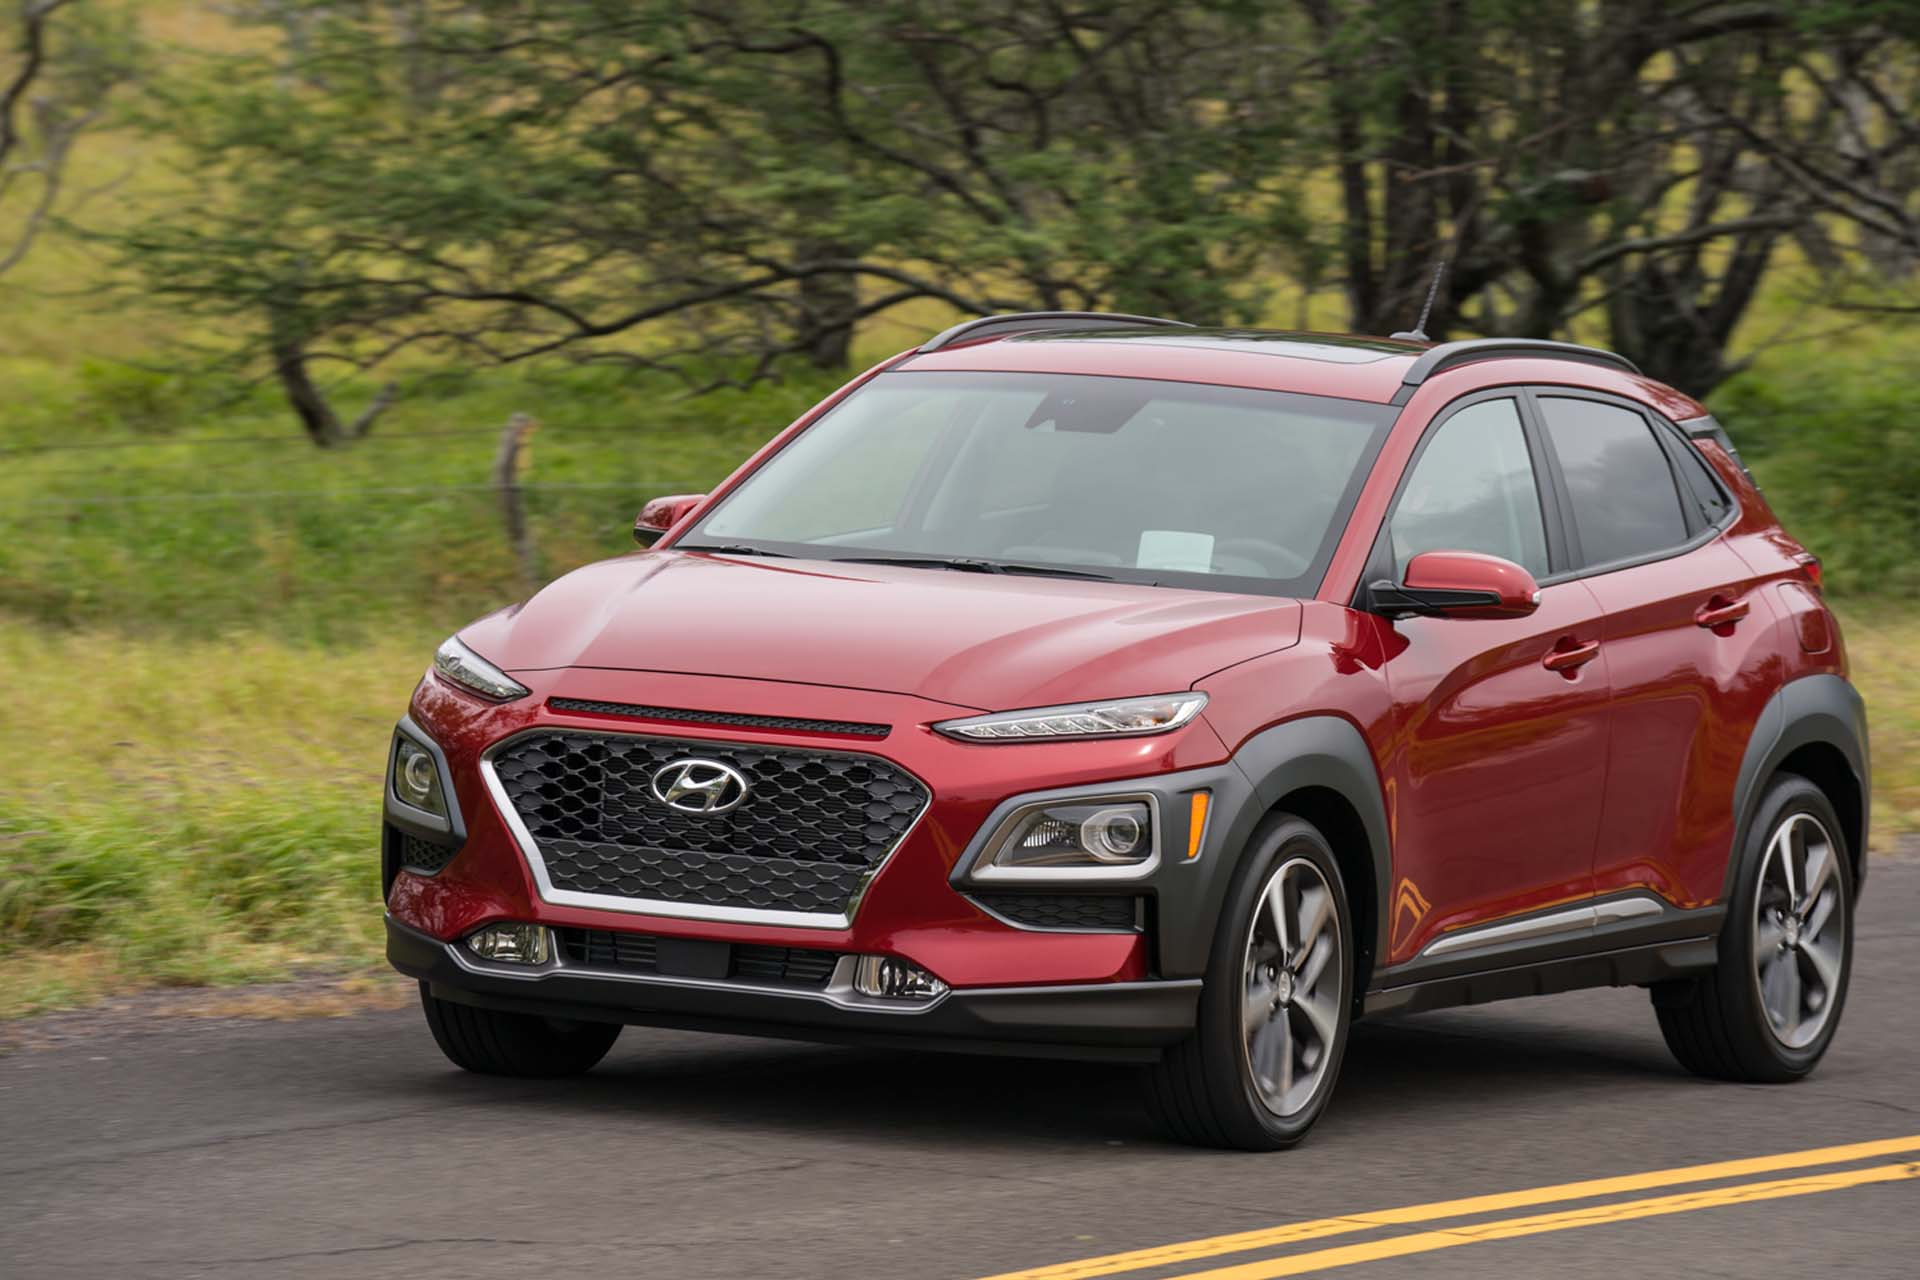 2018 Hyundai Kona Review, Ratings, Specs, Prices, and ...